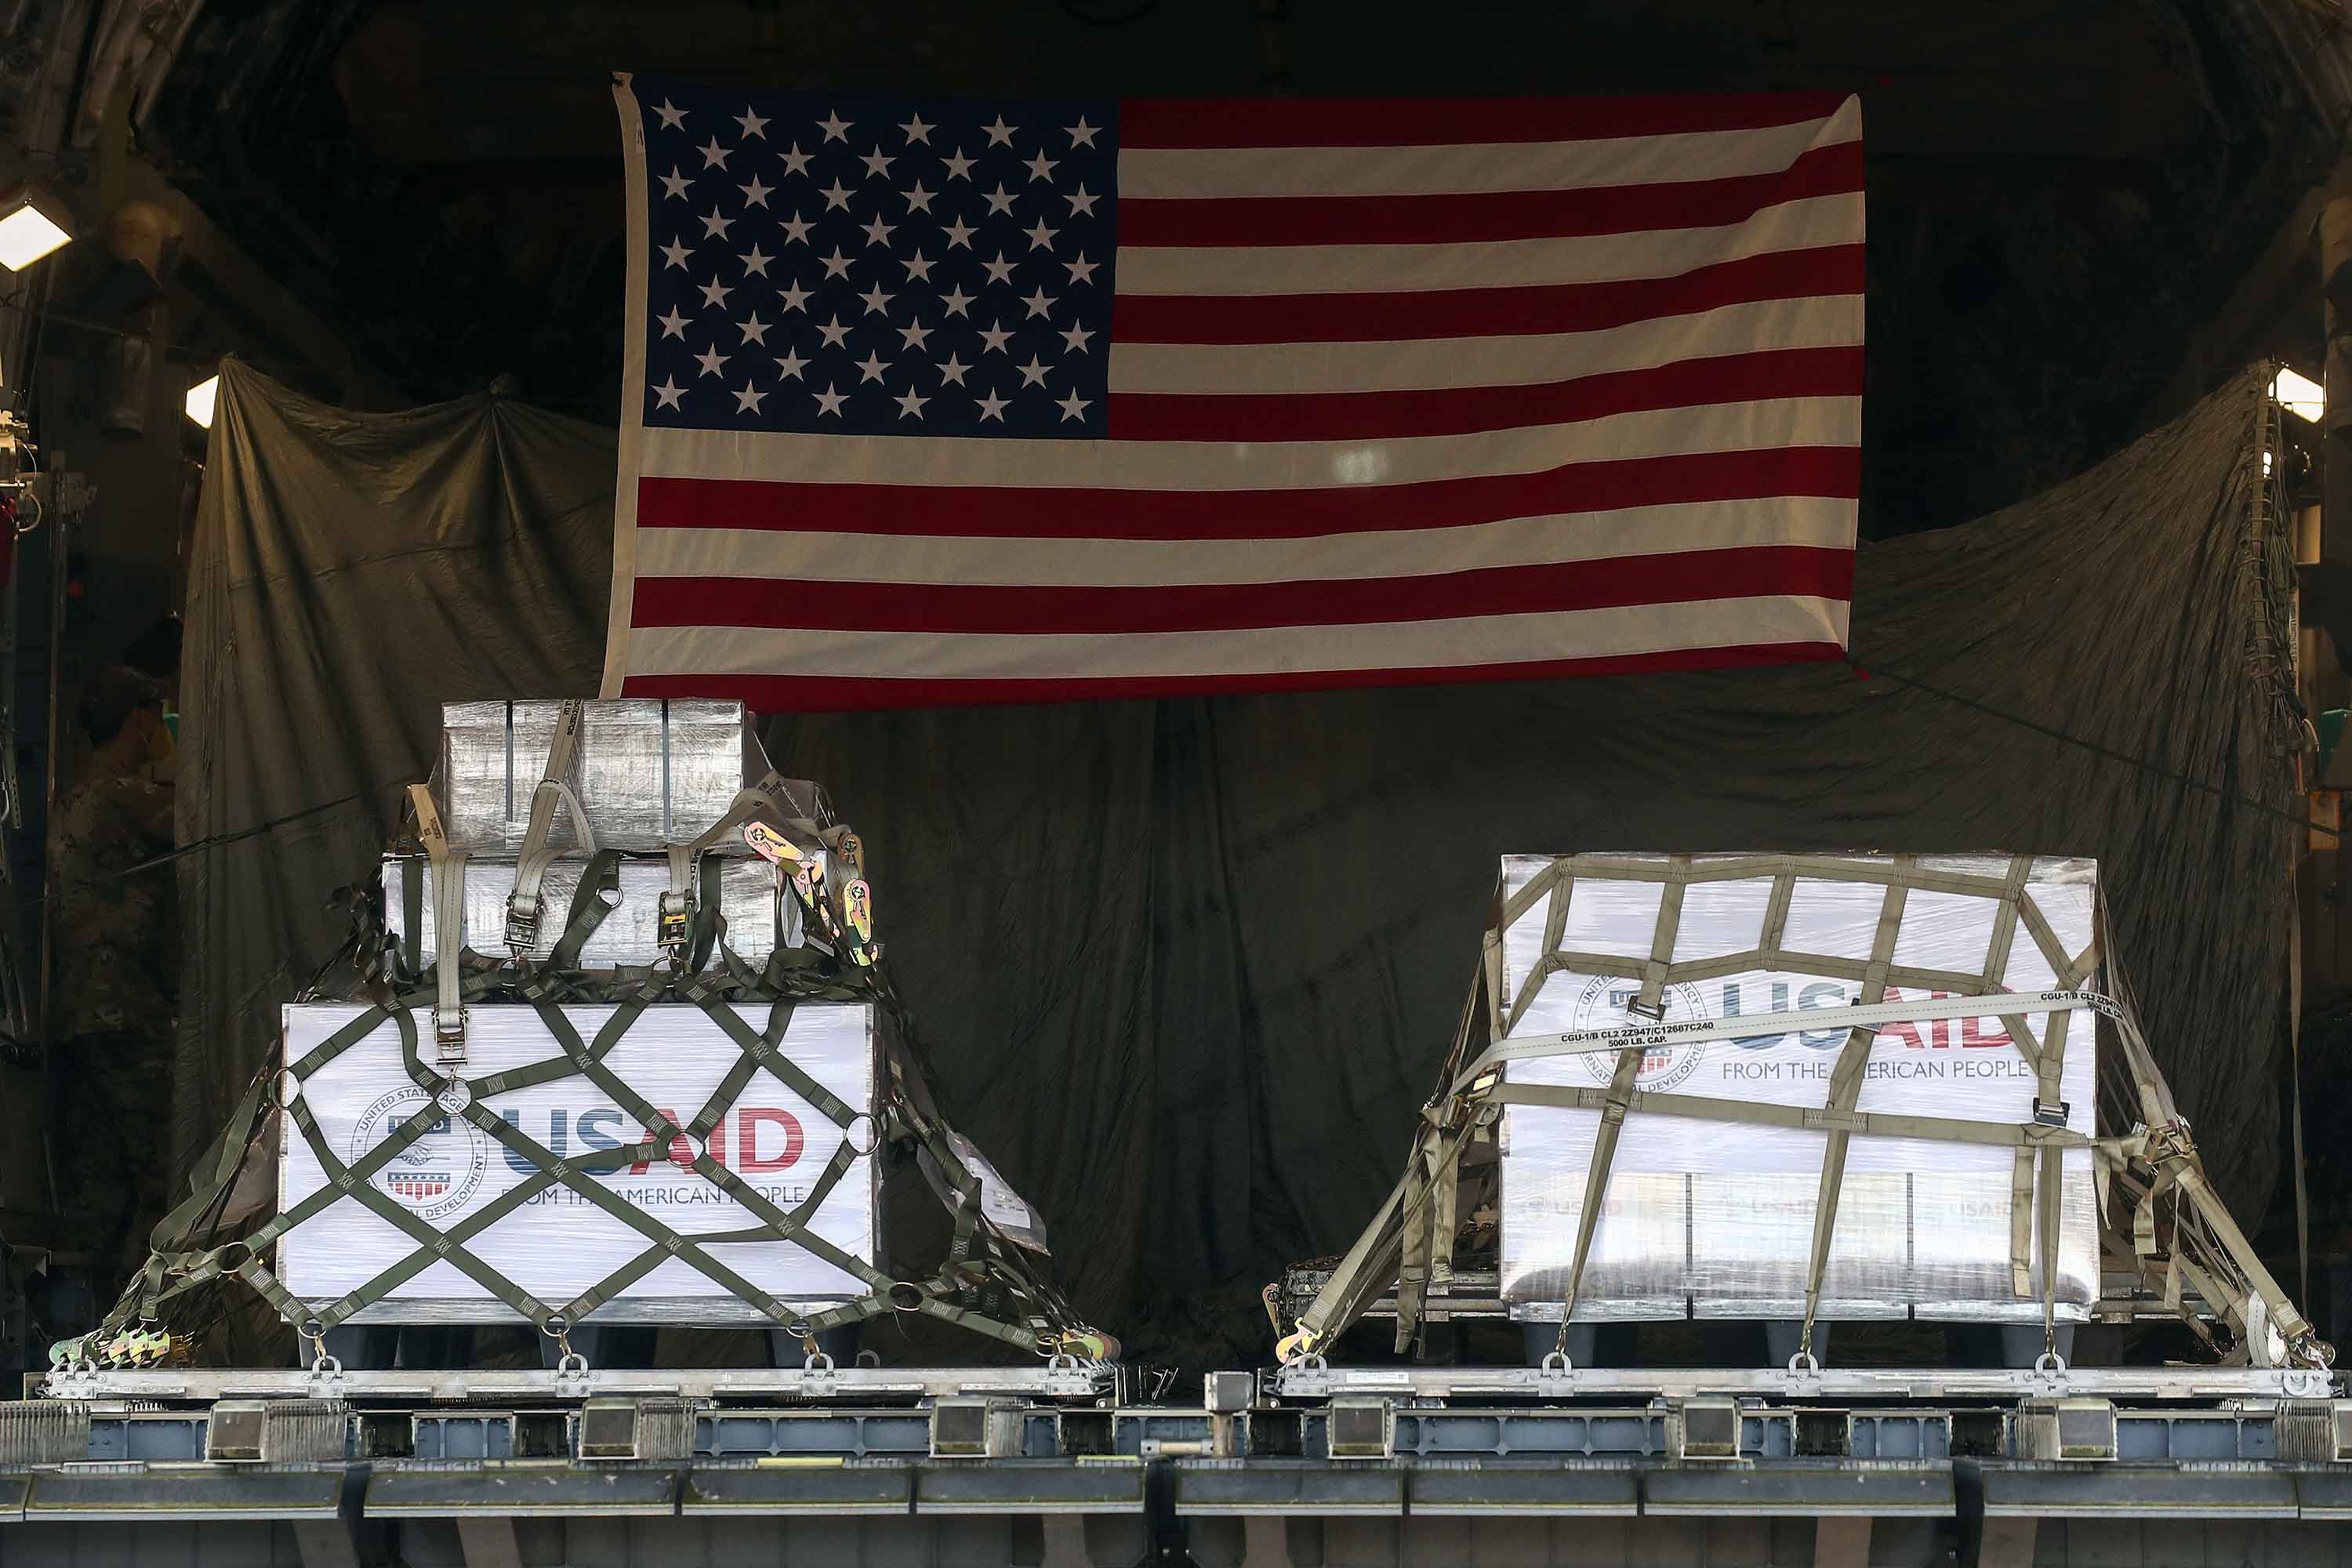 Medical ventilators are seen aboard a United States Air Force military transport aircraft after landing at Vnukovo-3 Airport in Moscow, on Thursday, May 21.